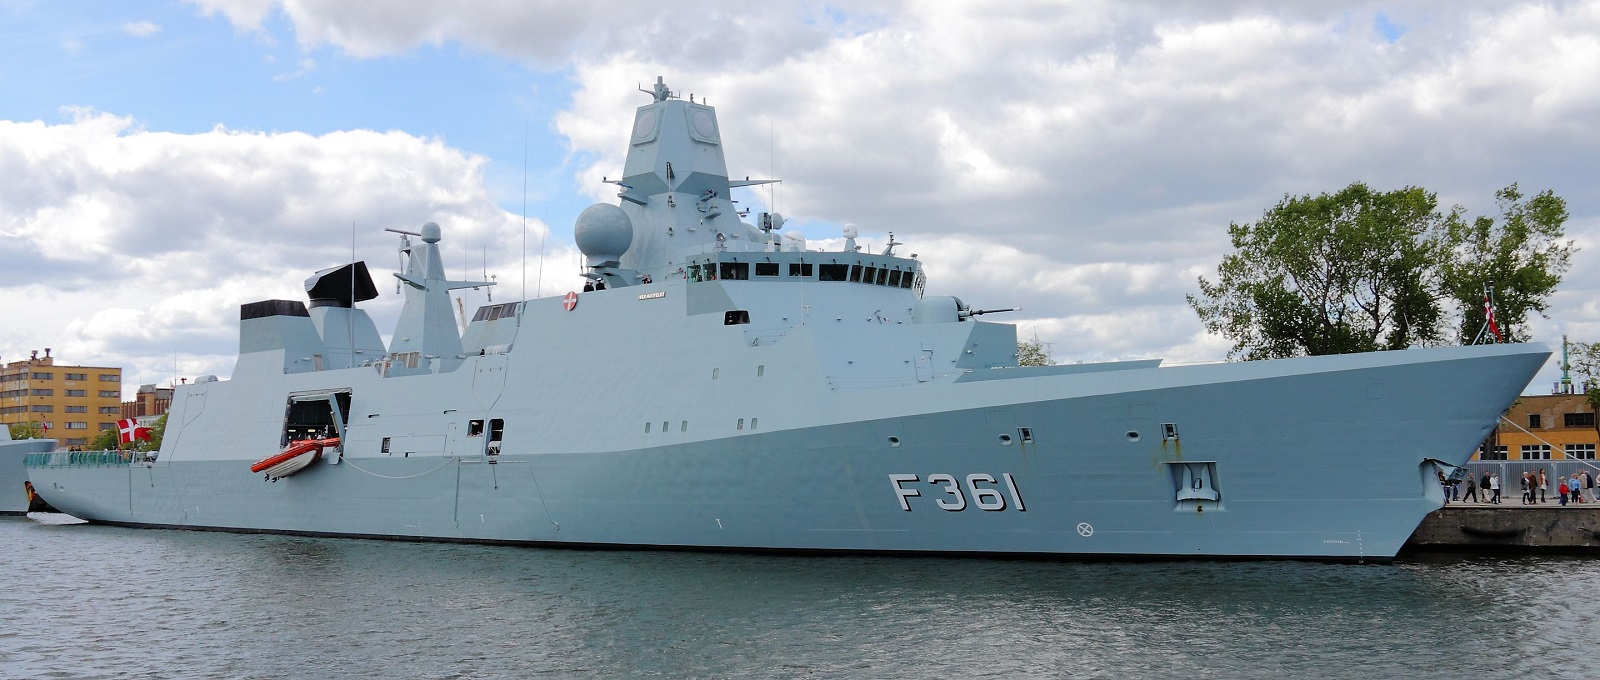 The Royal Navy Just Picked a New Frigate. Here's What We Can Tell You.